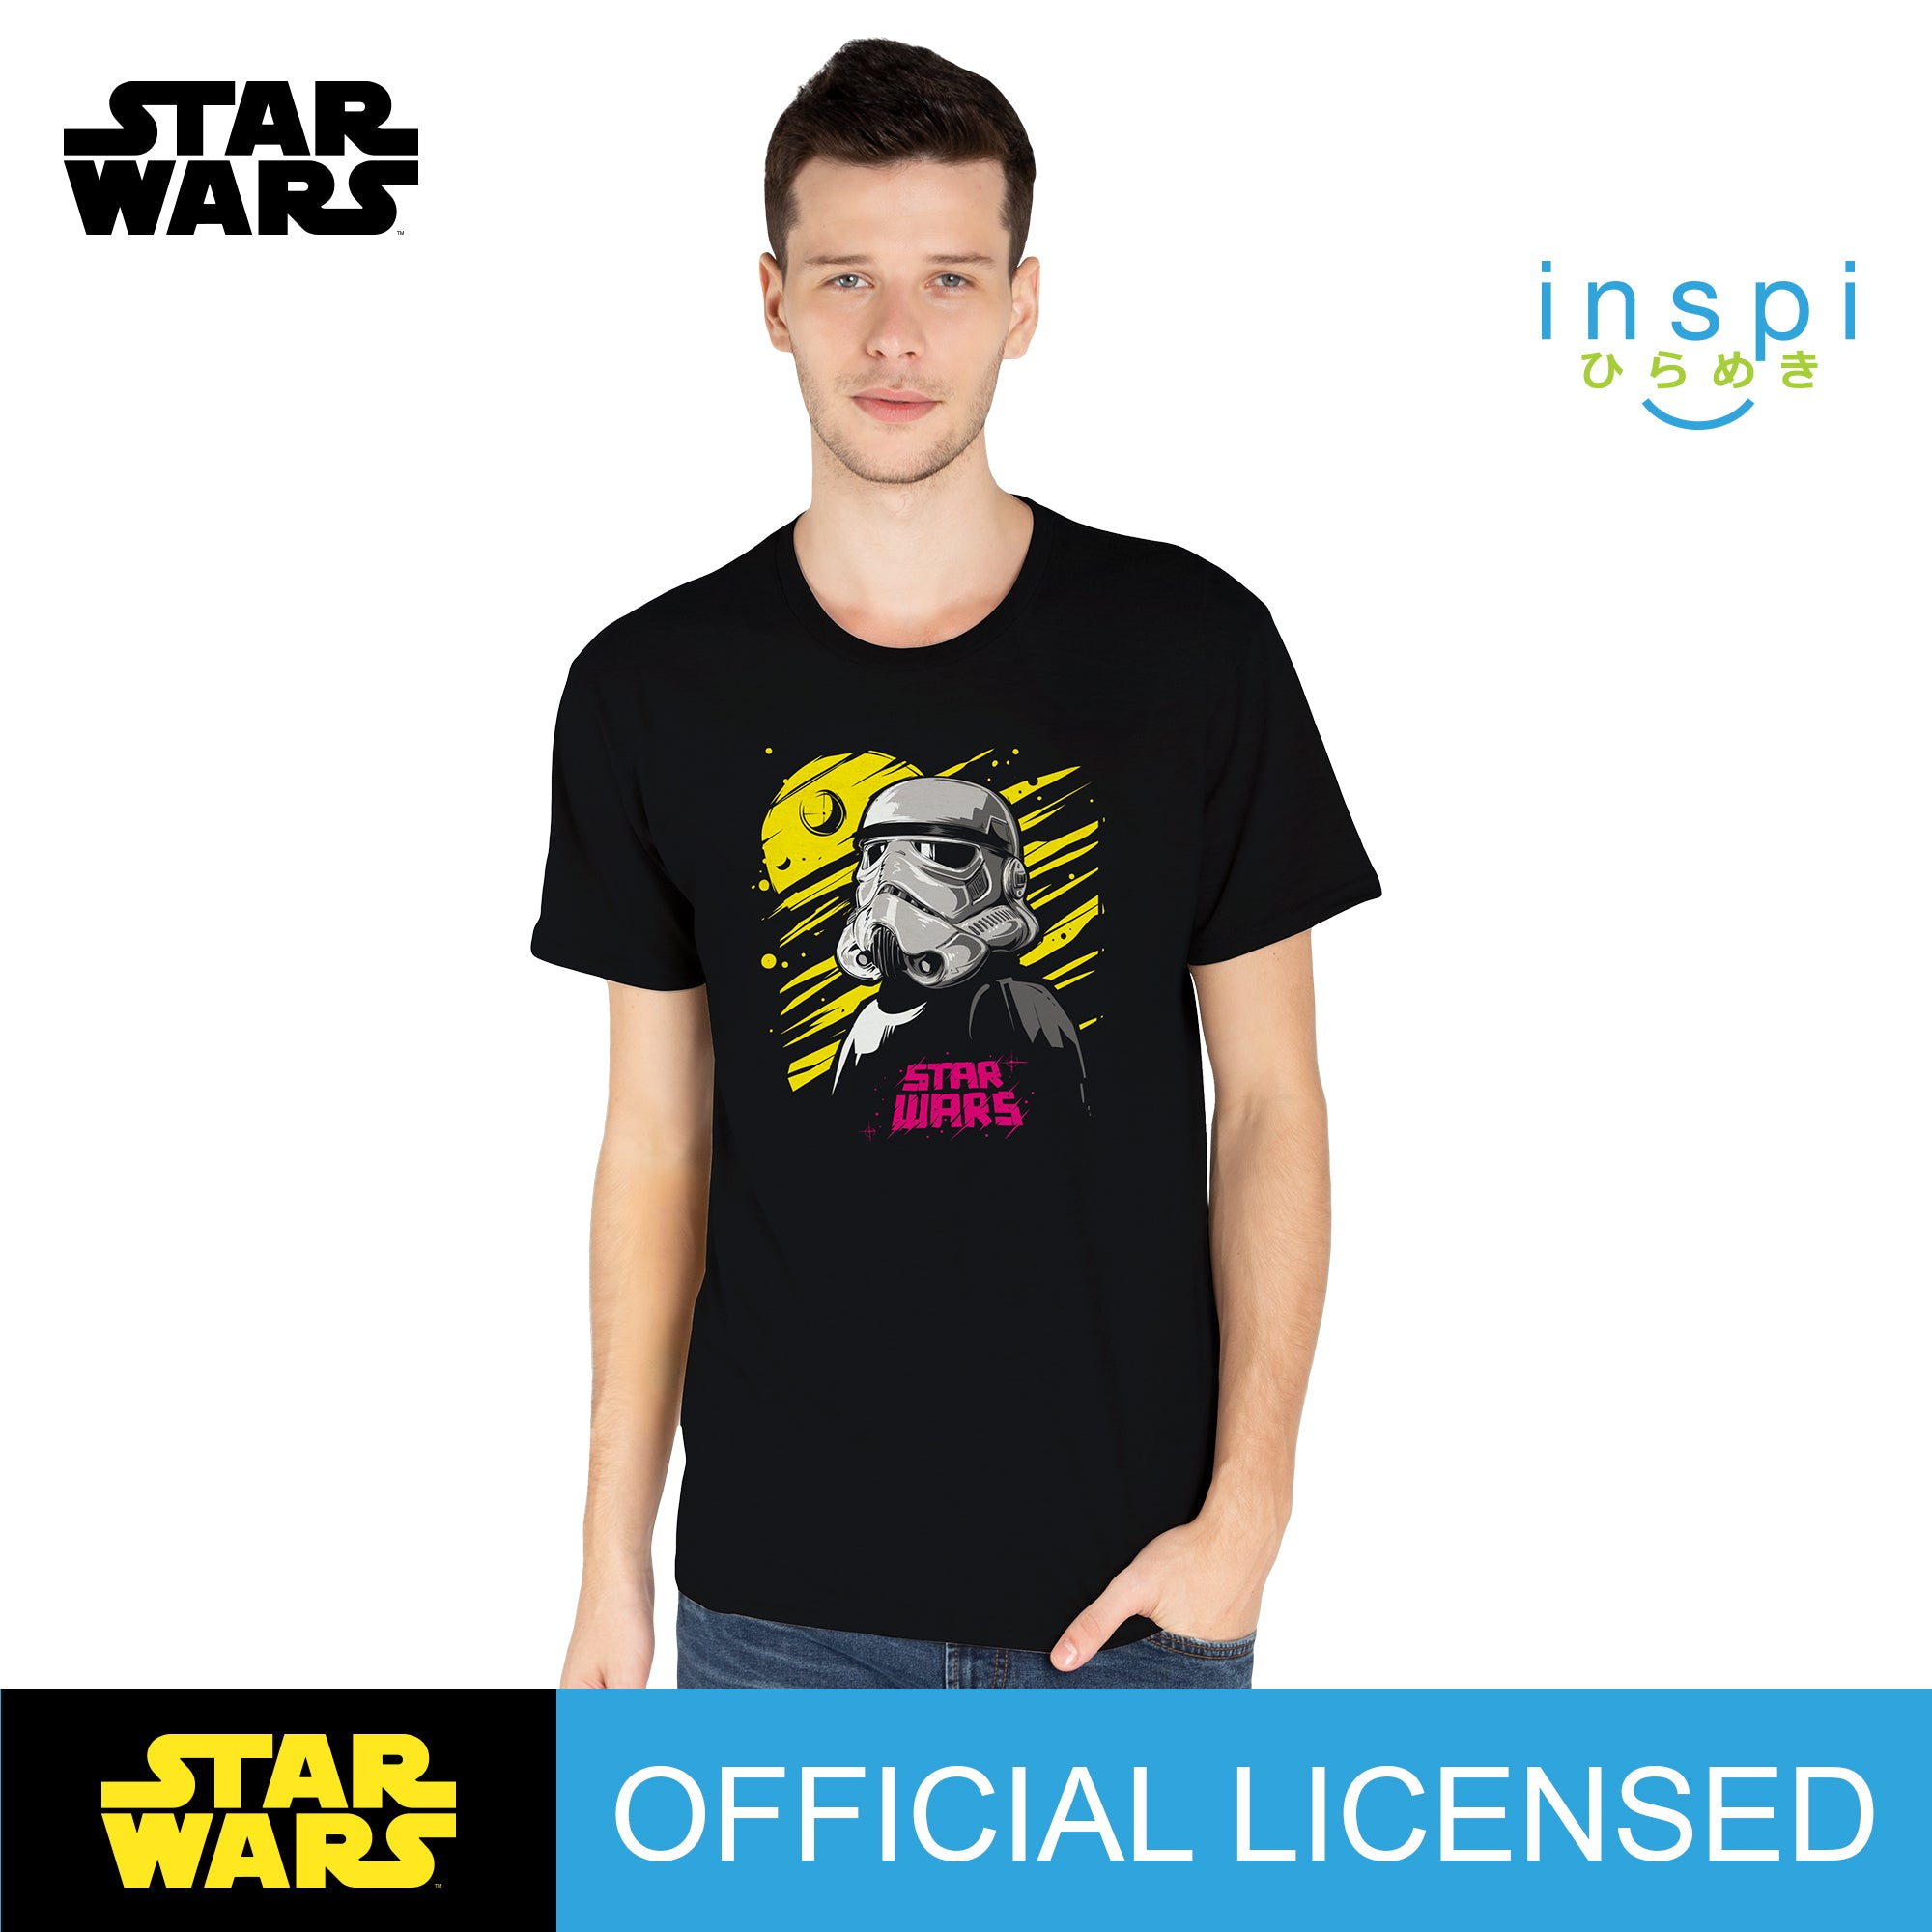 Star Wars Death Star Graphic Tshirt in Black for Men and for Women Inspi Shirt